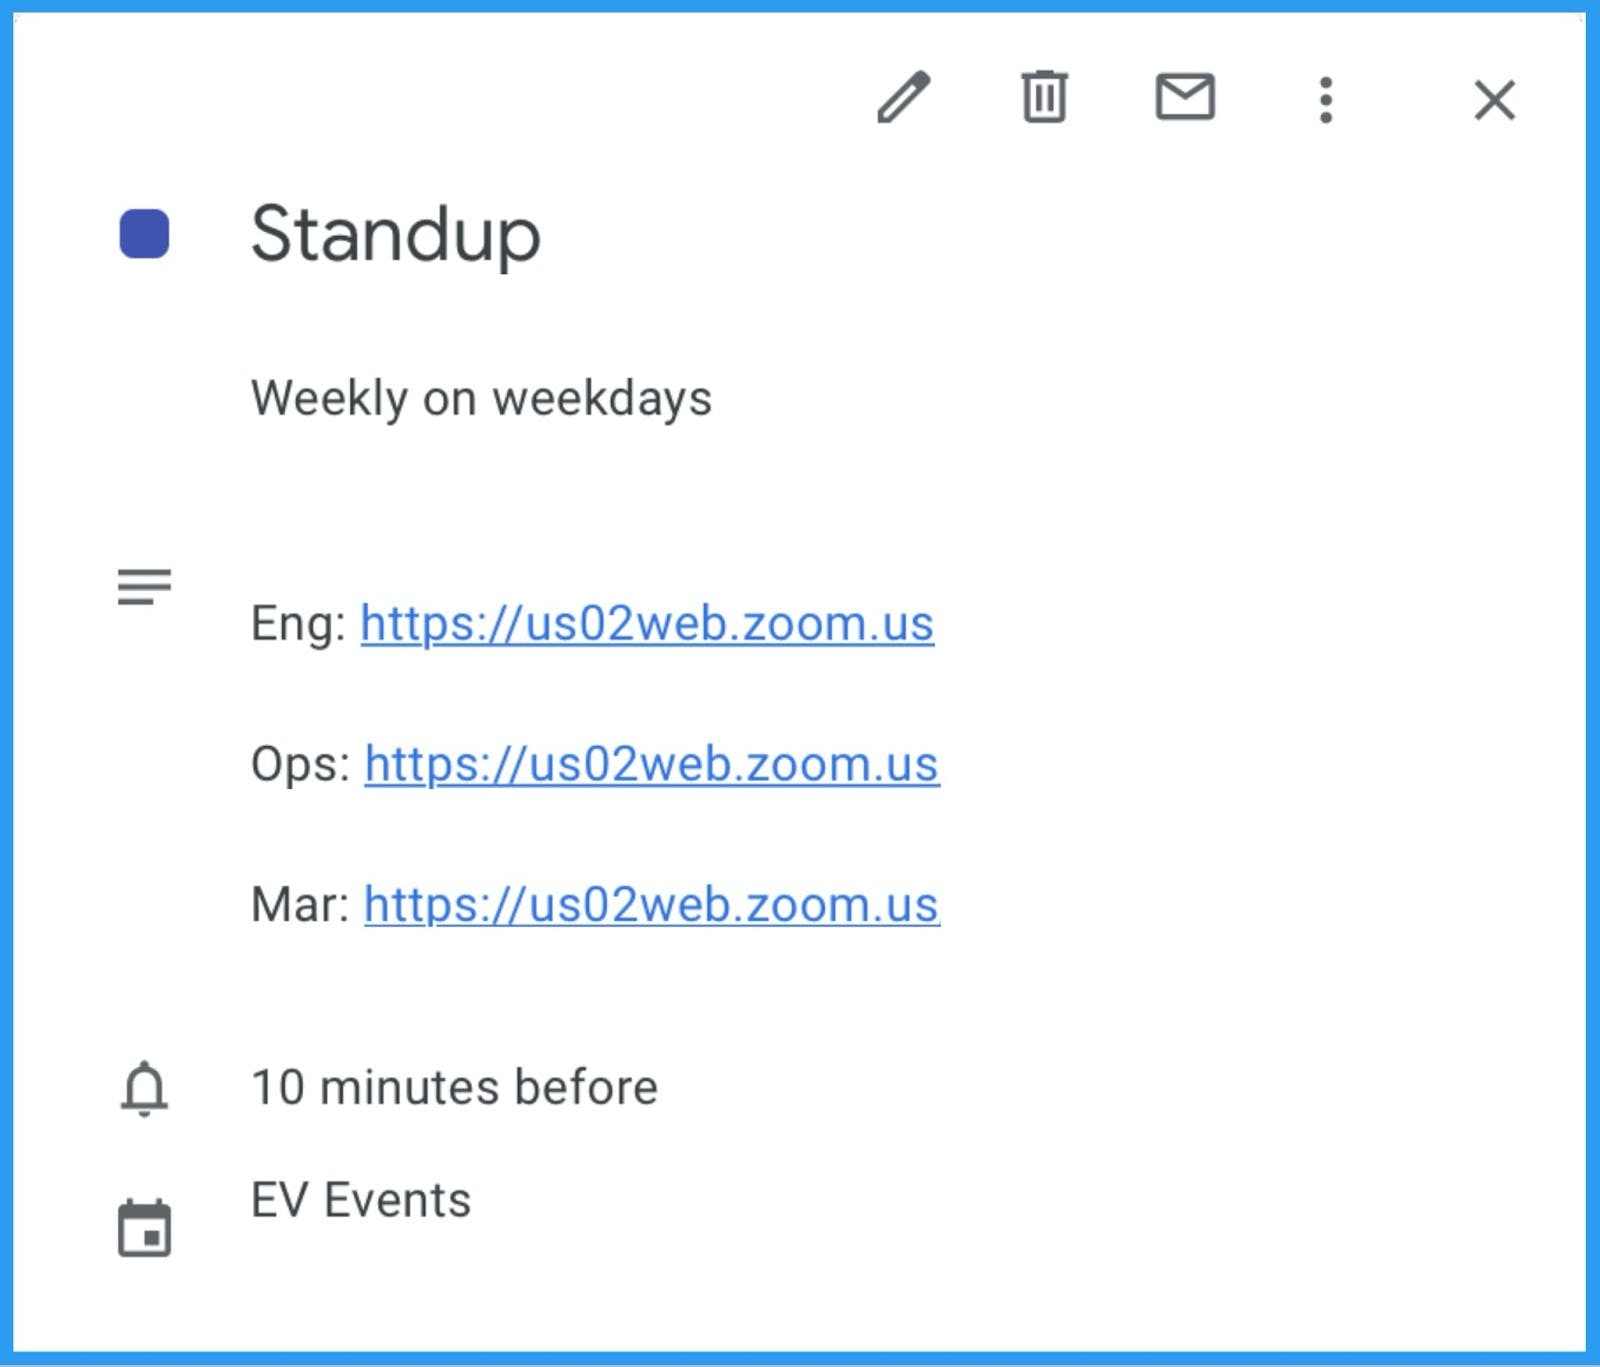 Stand-up calendar event divided into three meetings.